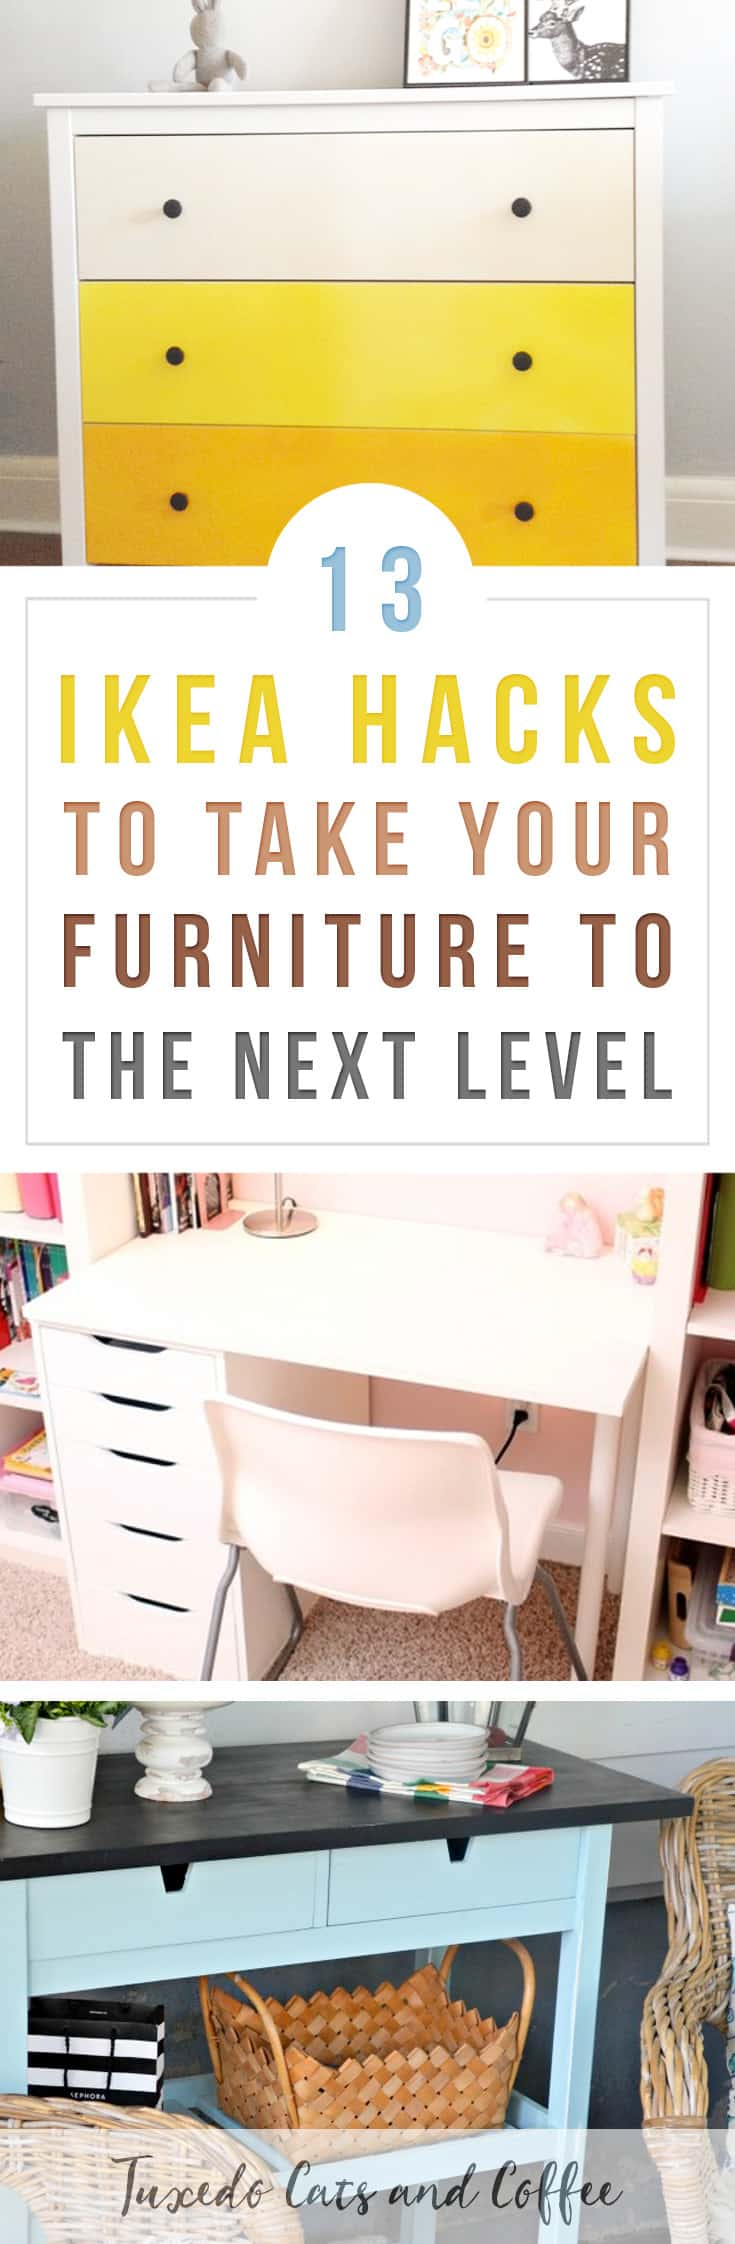 With a destructive tuxedo cat and a propensity for being clumsy and spilling things myself, I prefer to keep my apartment furnished with budget-friendly furniture that I don't have to worry about too much. I love Ikea furniture, but sometimes you want home decor that looks more unique or matches the rest of your decorating. Here are 13 Ikea hacks to take your furniture to the next level.